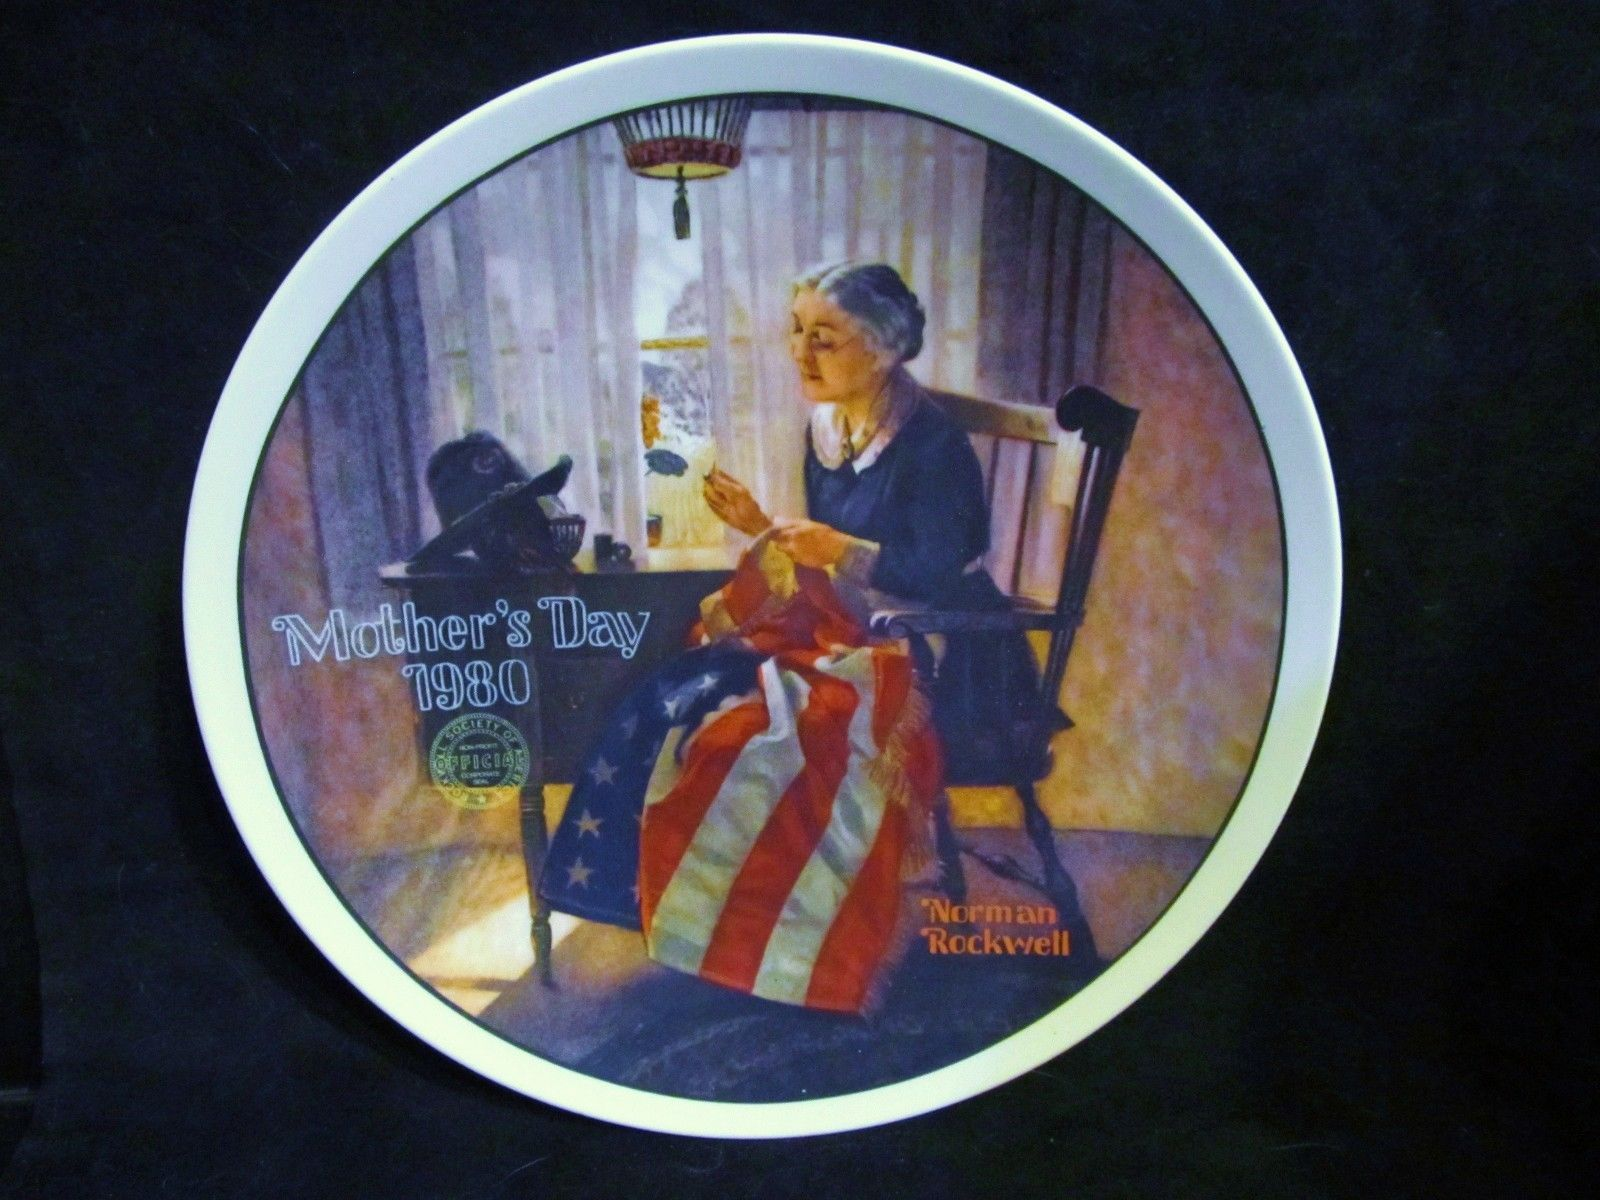 "Norman Rockwell's ' A Mothers Pride 1980"" 5th  Limited Edition Collector Plate"